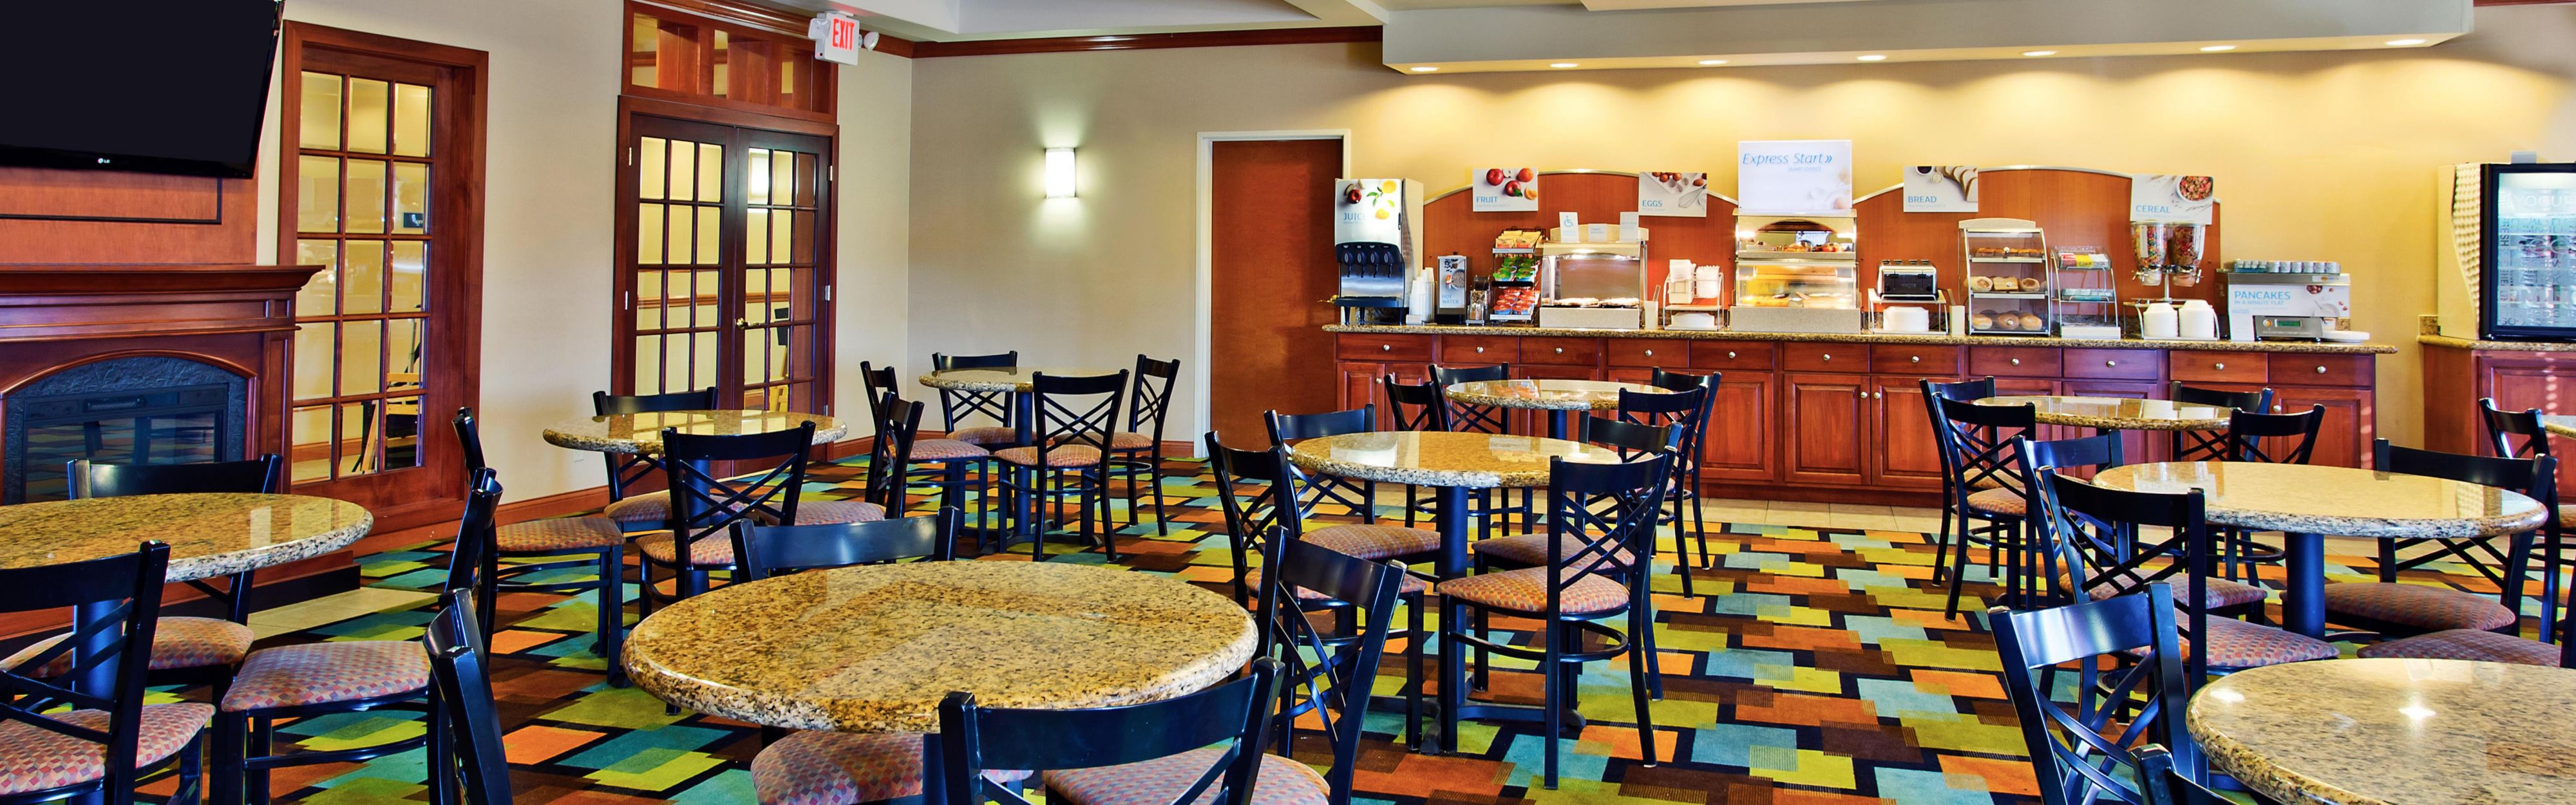 Holiday Inn Express & Suites Anderson image 3